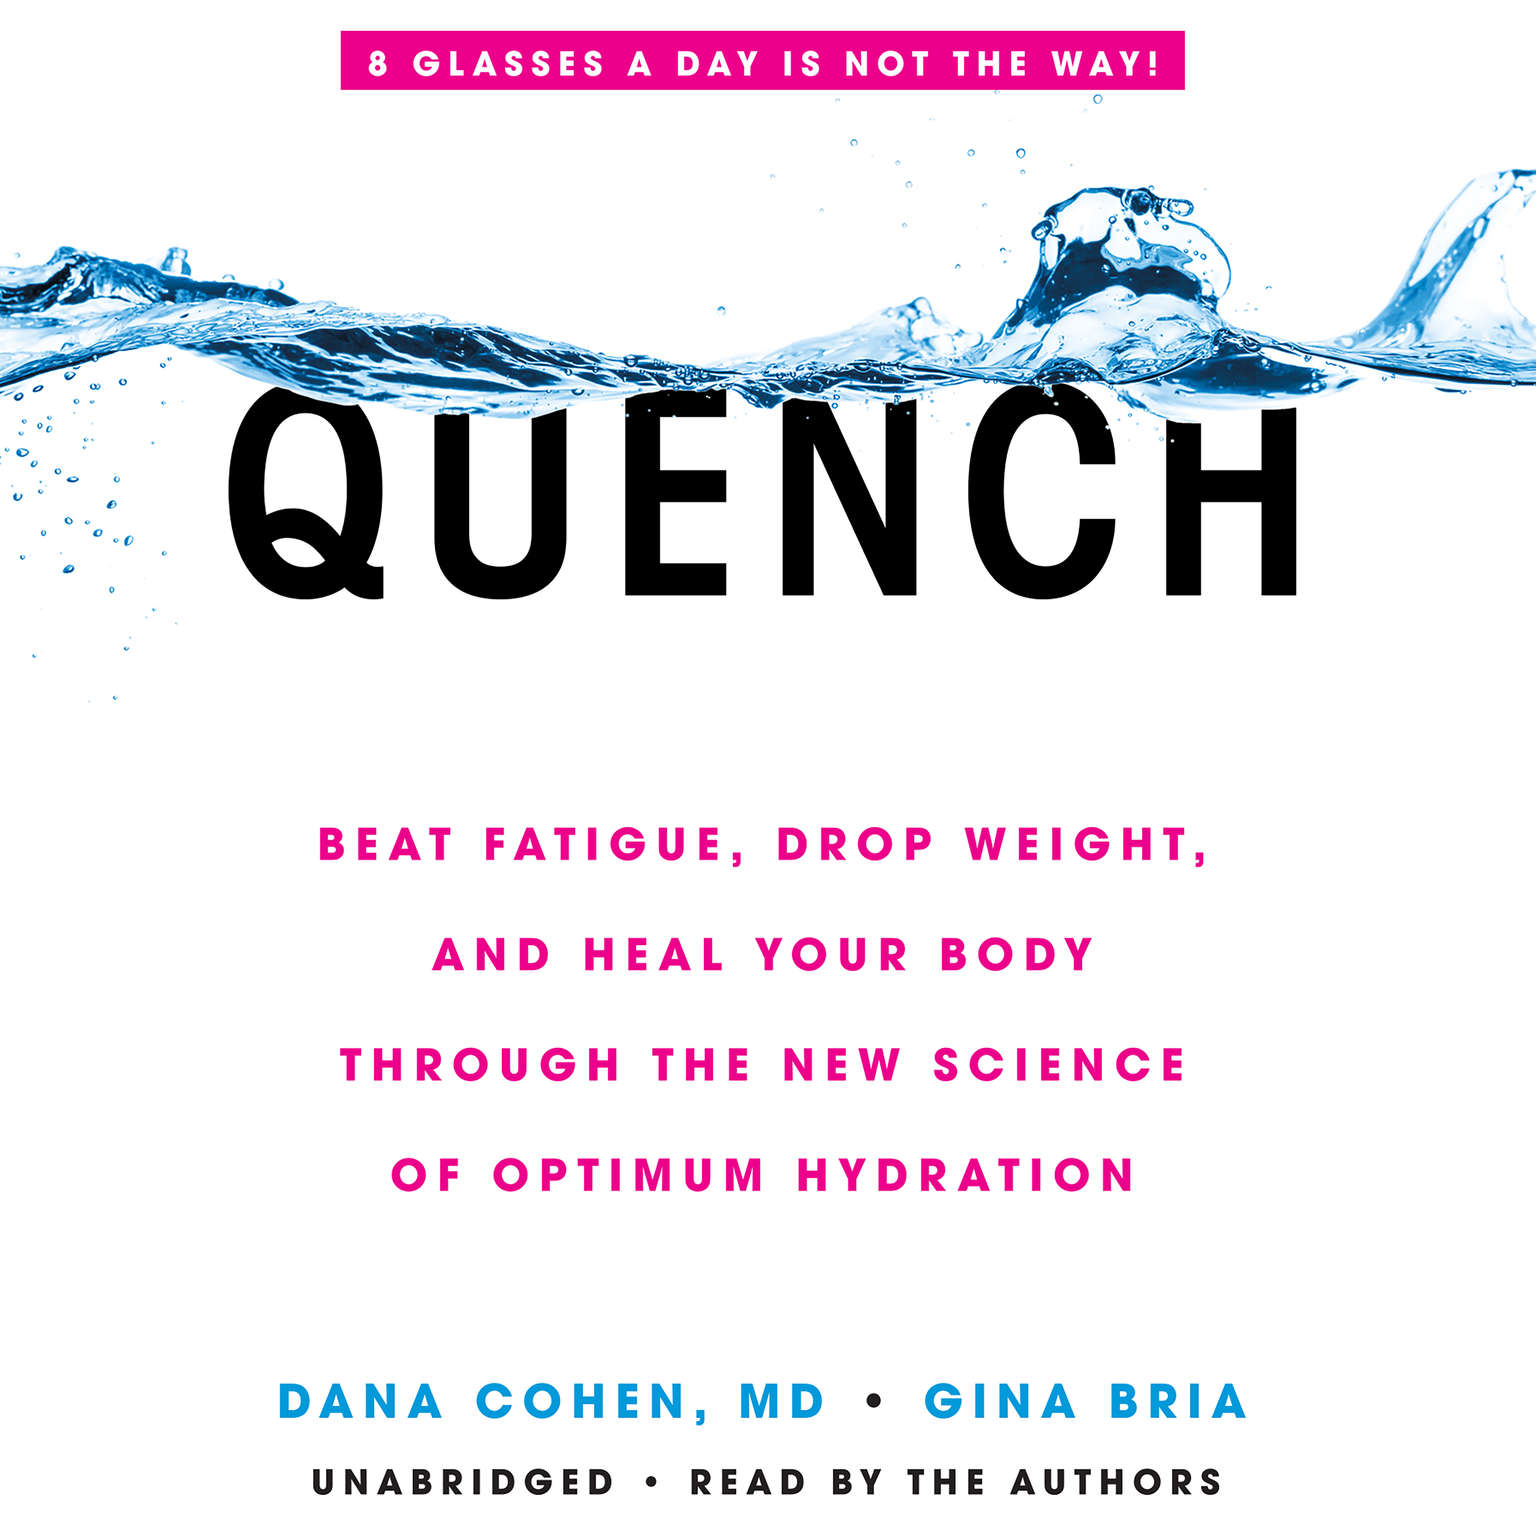 Quench: Beat Fatigue, Drop Weight, and Heal Your Body Through the New Science of Optimum Hydration Audiobook, by Dana Cohen